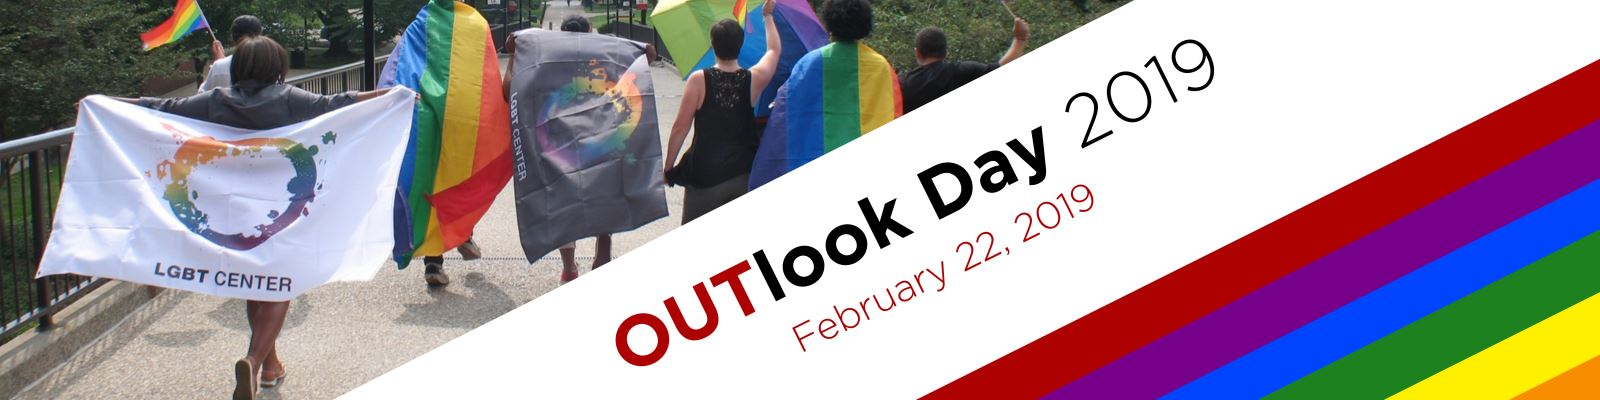 OUTlook Day | February 22, 2019